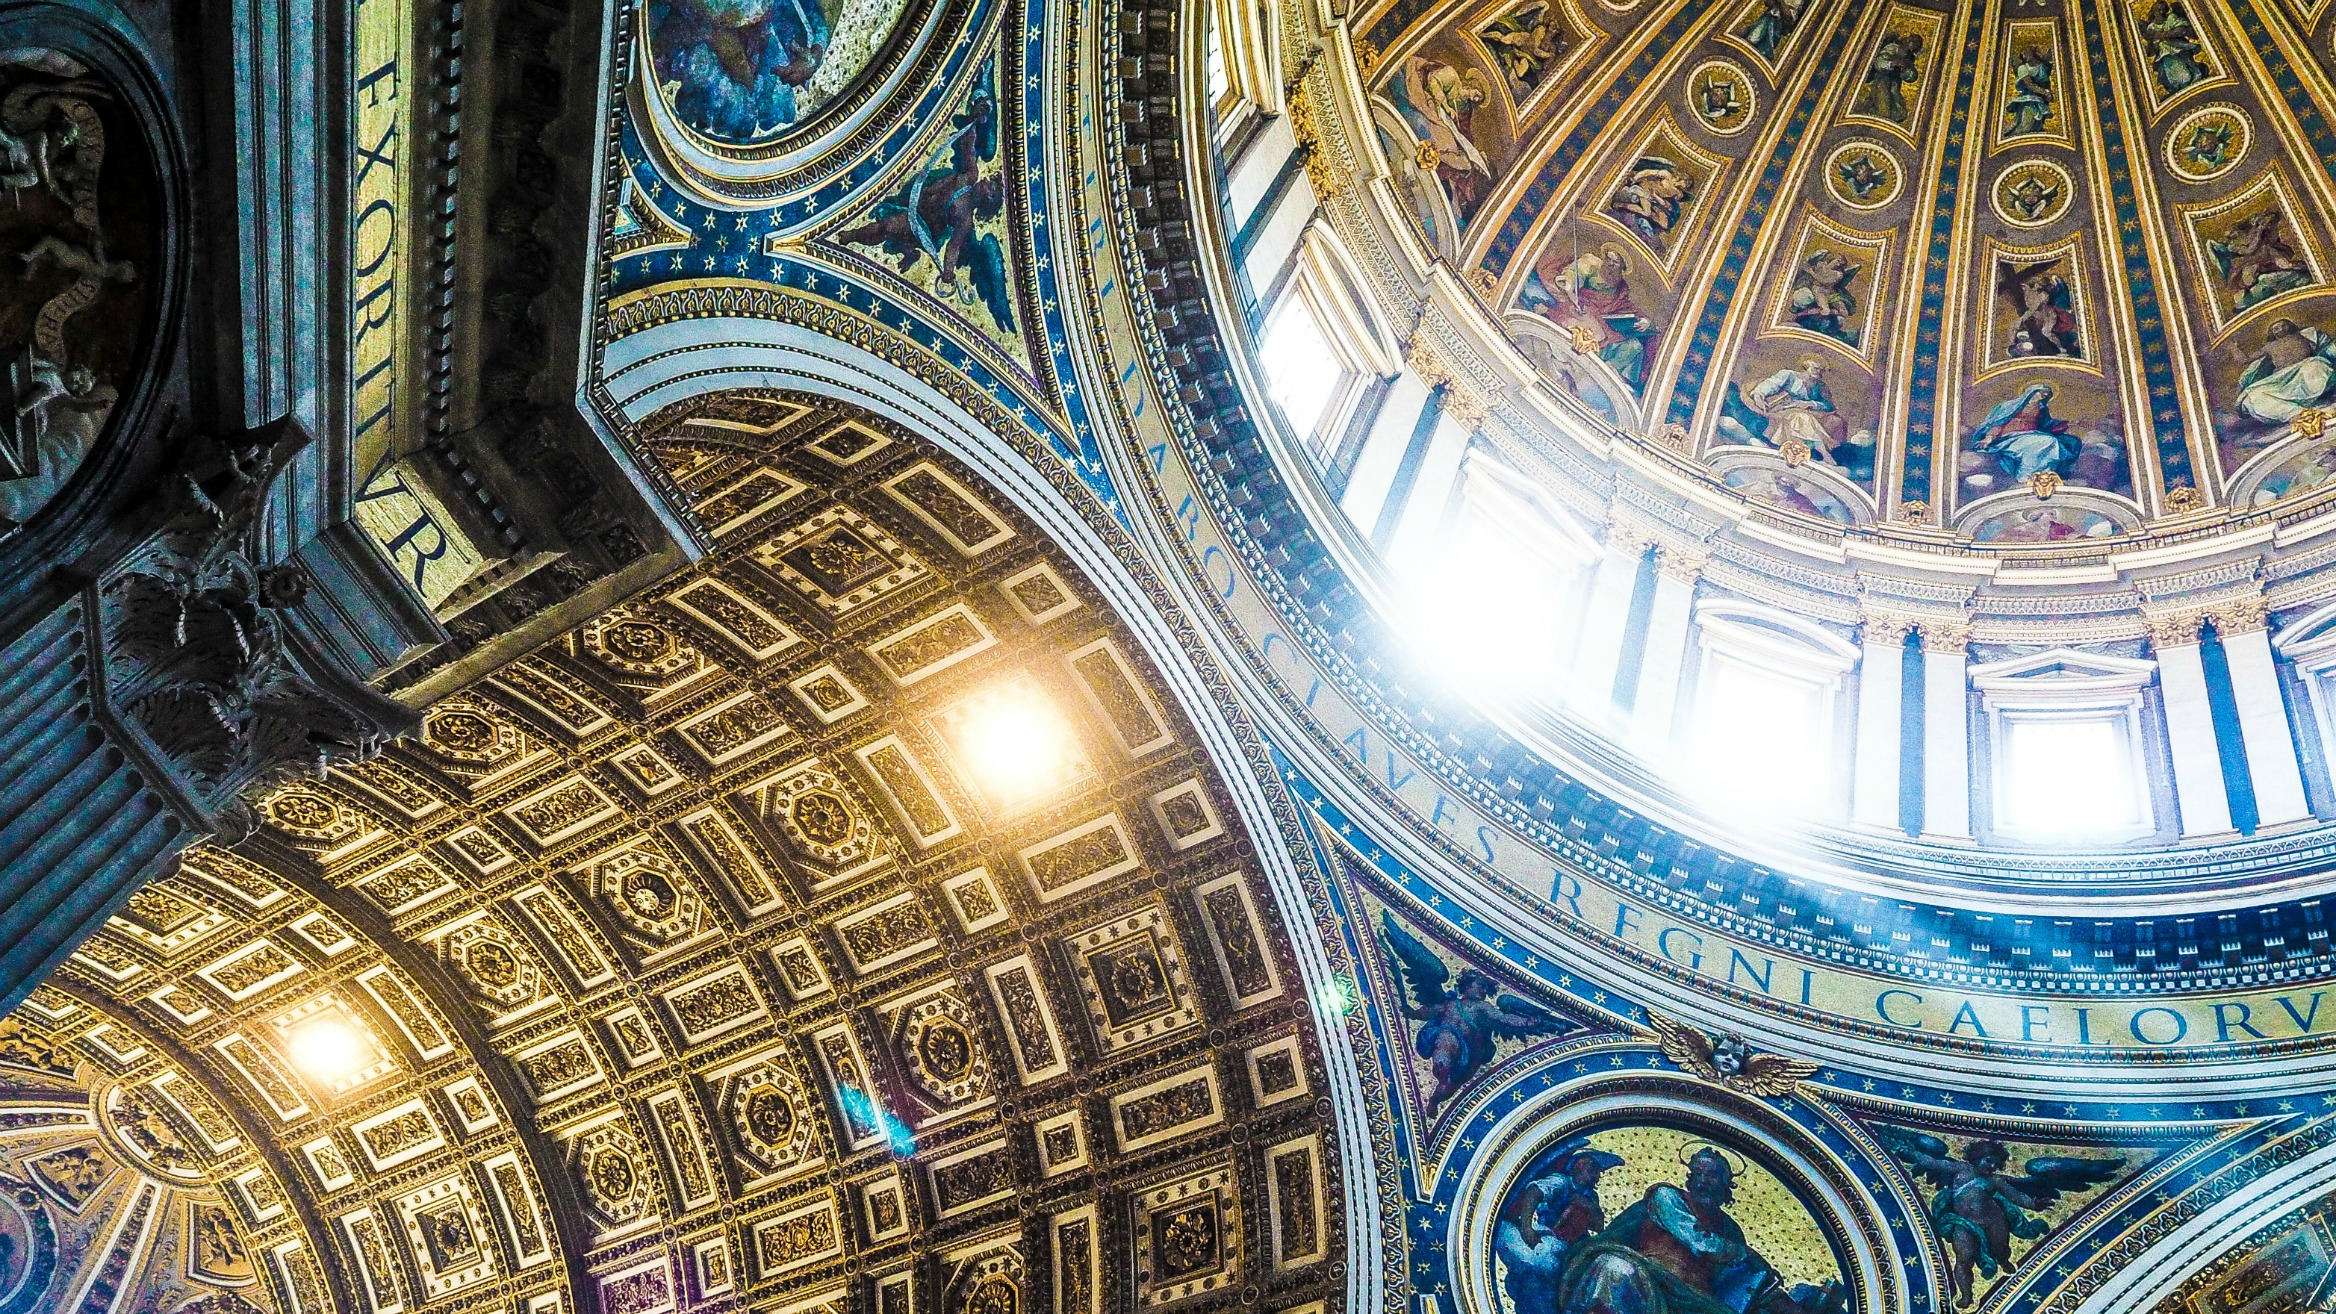 St Peter's Dome